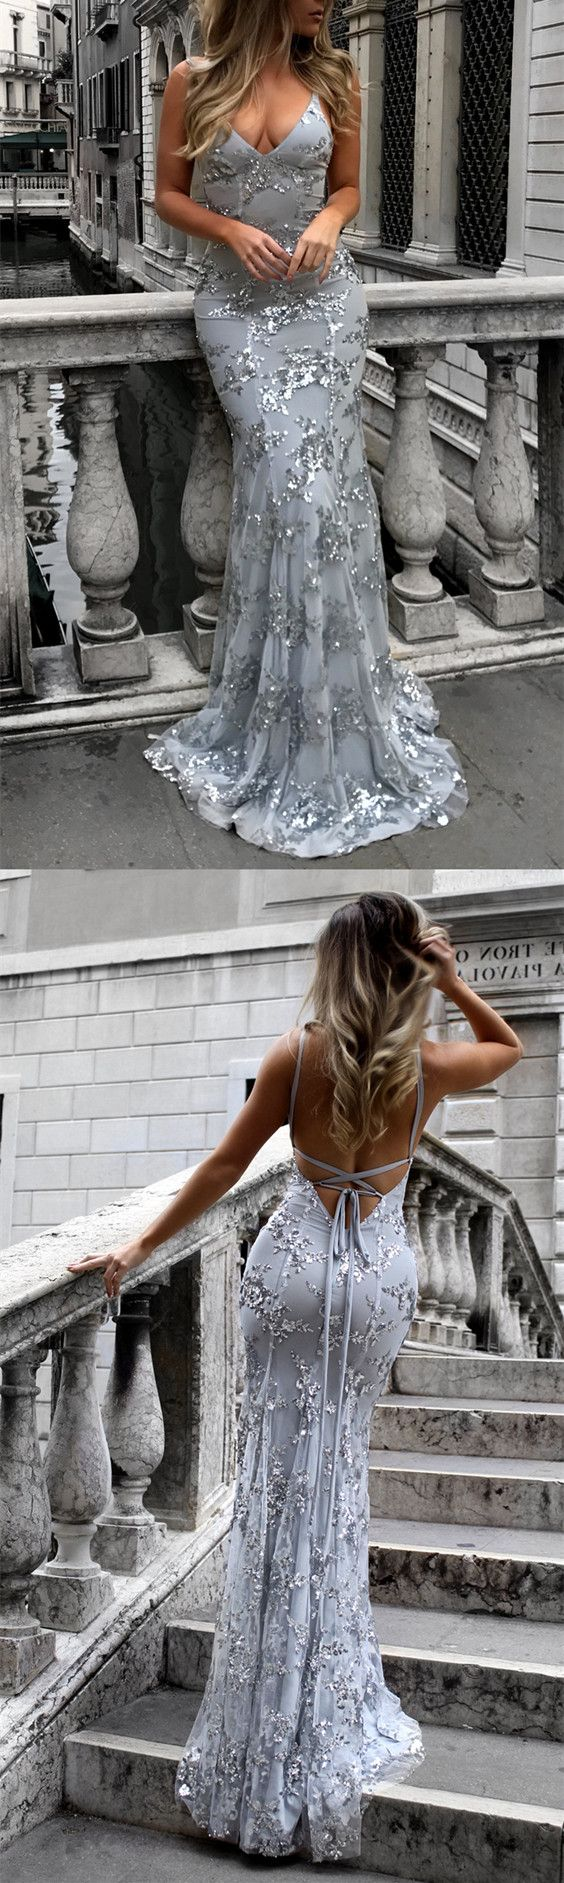 open back prom dress,mermaid prom dress,mermaid evening gowns,sexy prom dress,prom dresses 2018,silver evening gowns,silver prom dress,backless prom dress